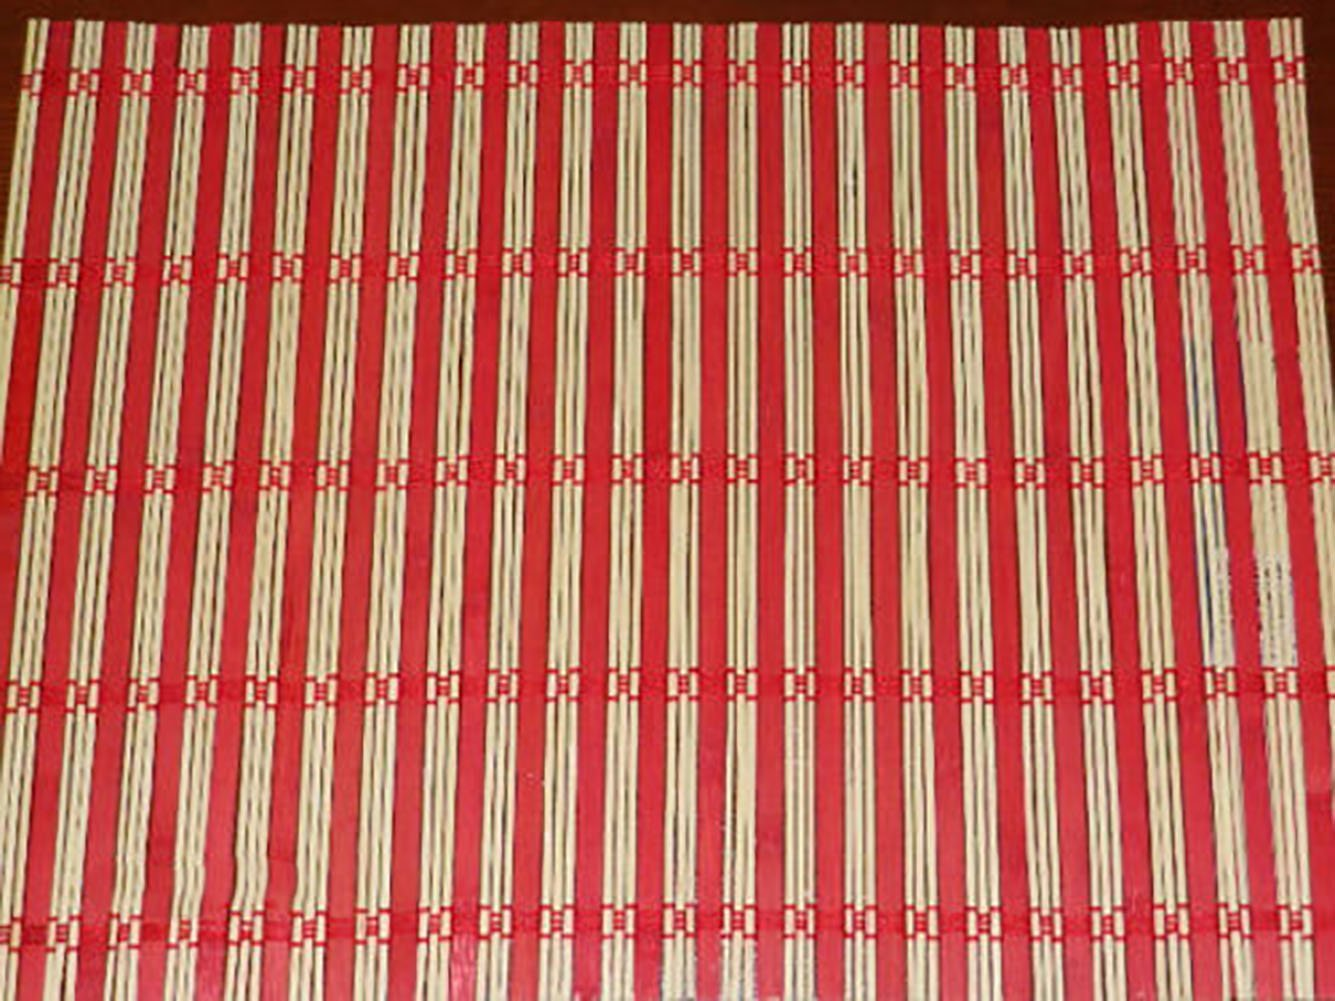 "Unique & Custom {12'' x 17'' Inch} Set Pack of 2 Rectangle ""Non-Slip Grip Texture"" Large Table Placemats Made of Genuine Bamboo Wood w/Cool Natural Striped Roll Up Design [Colorful Tan & Red]"